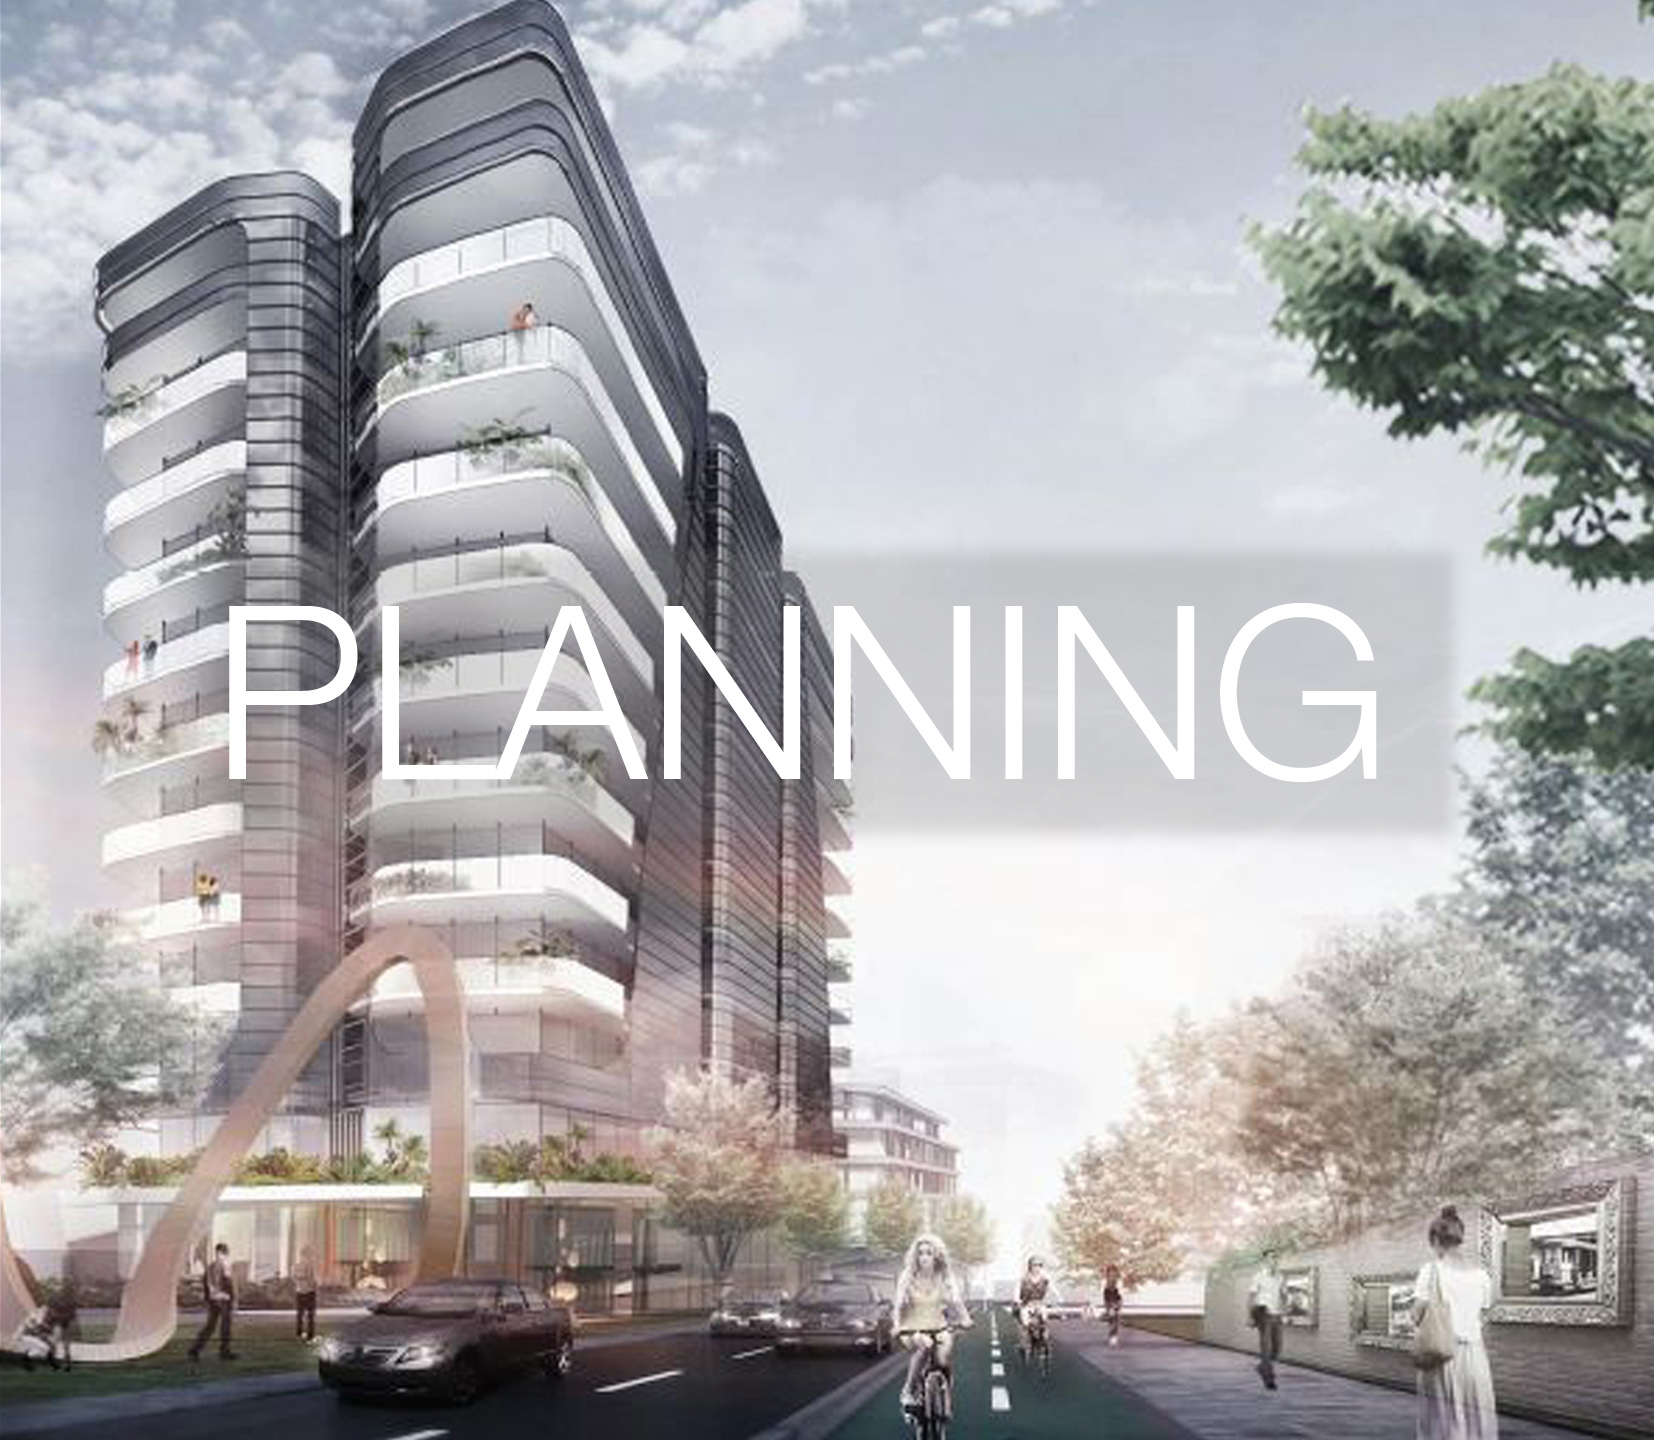 http://www.cityplan.com.au/planning-projects/